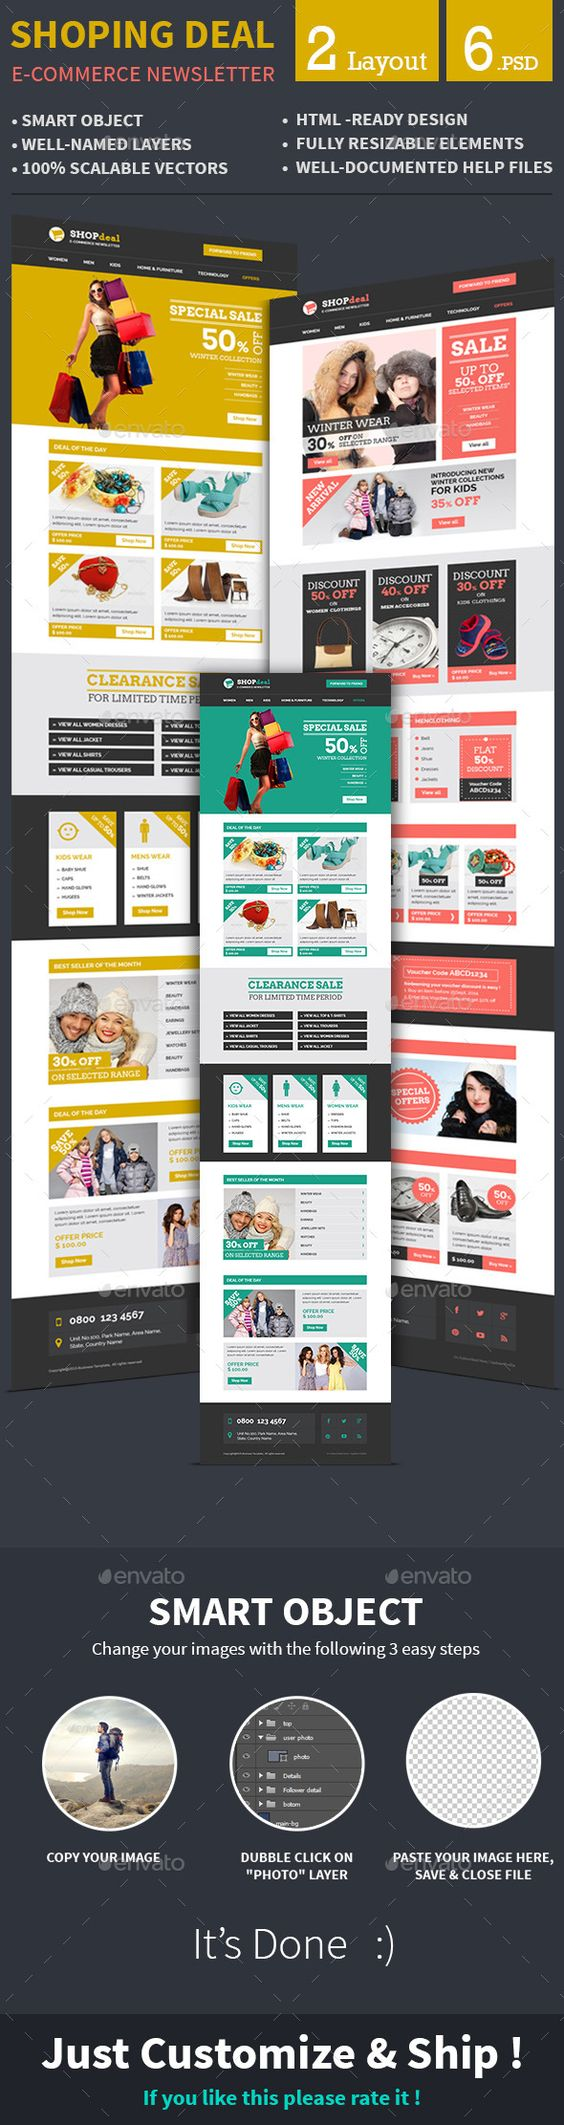 e commerce special offer email template ecommerce email e commerce special offer email template psd here